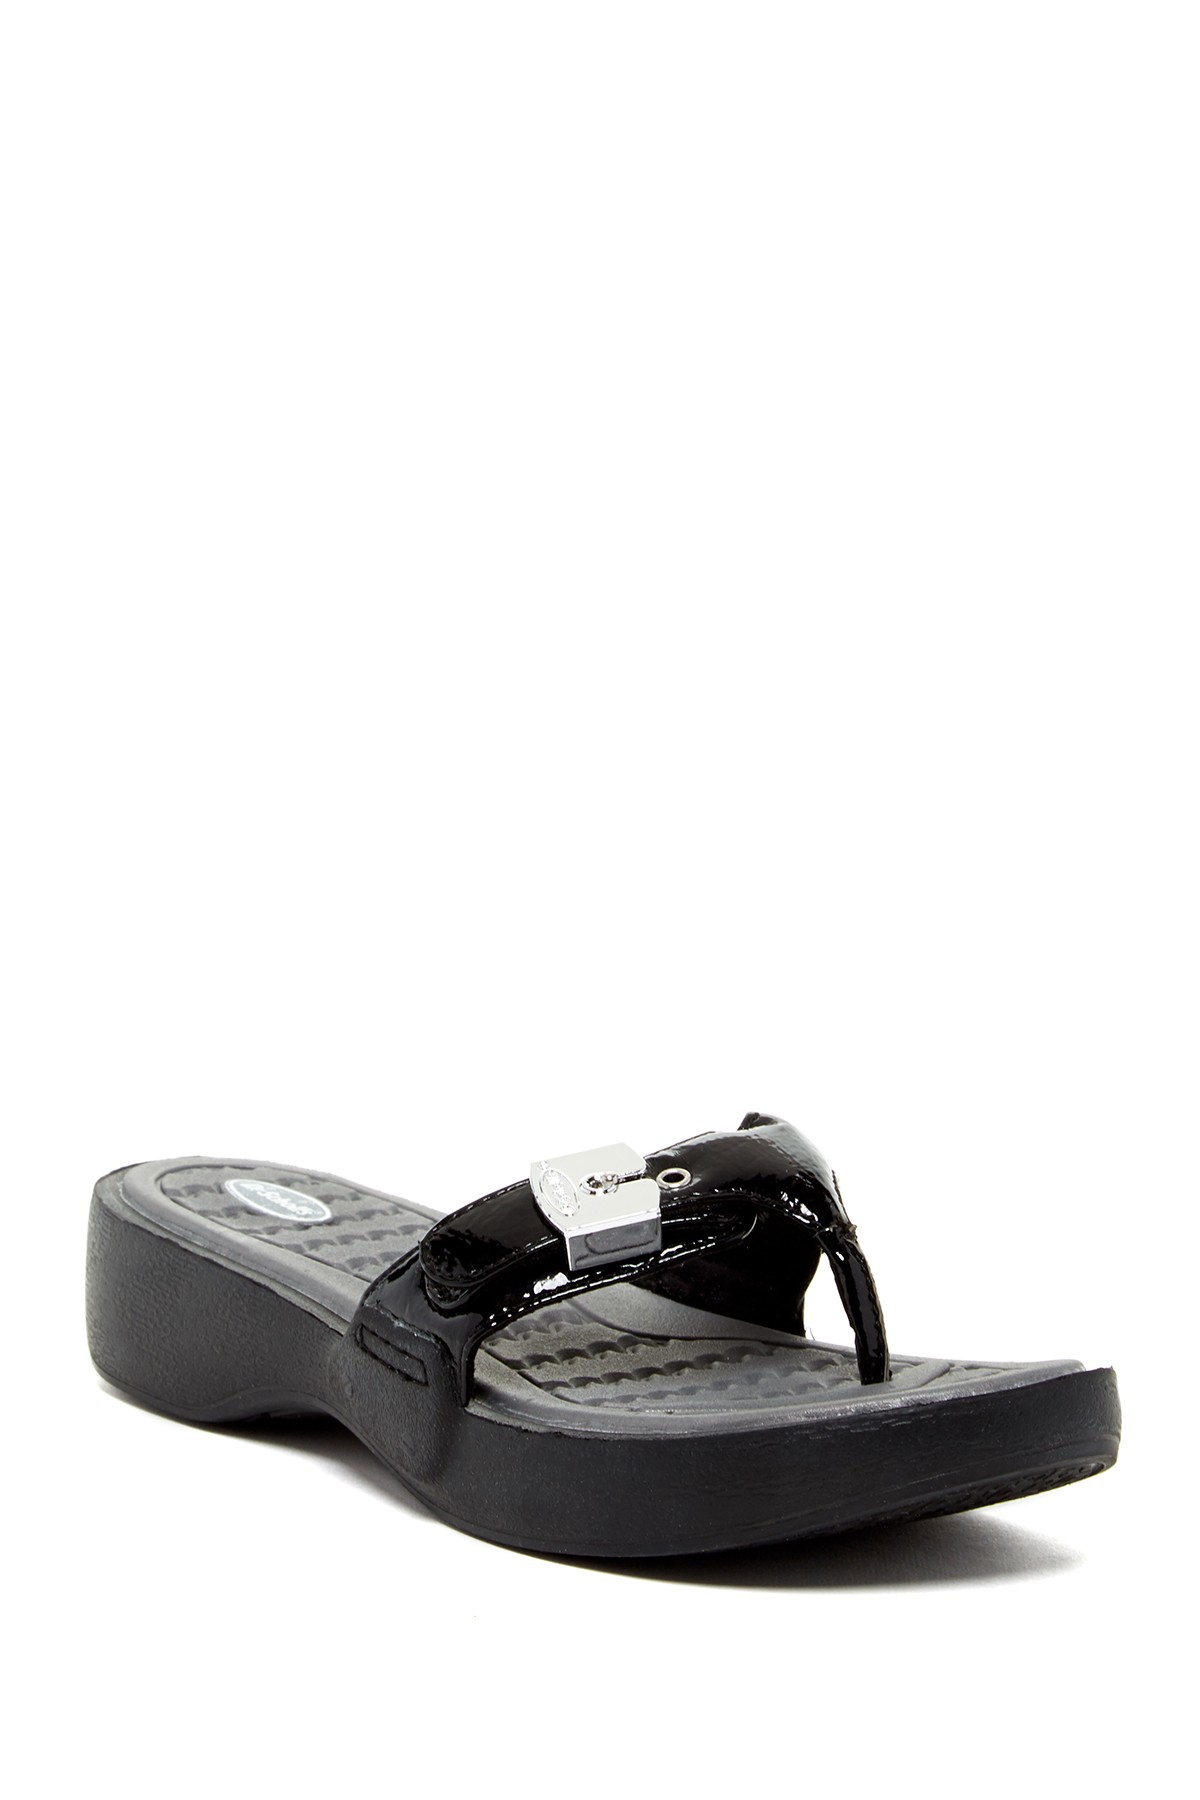 Dr Scholls Roll Sandal In Black Save 34 Lyst